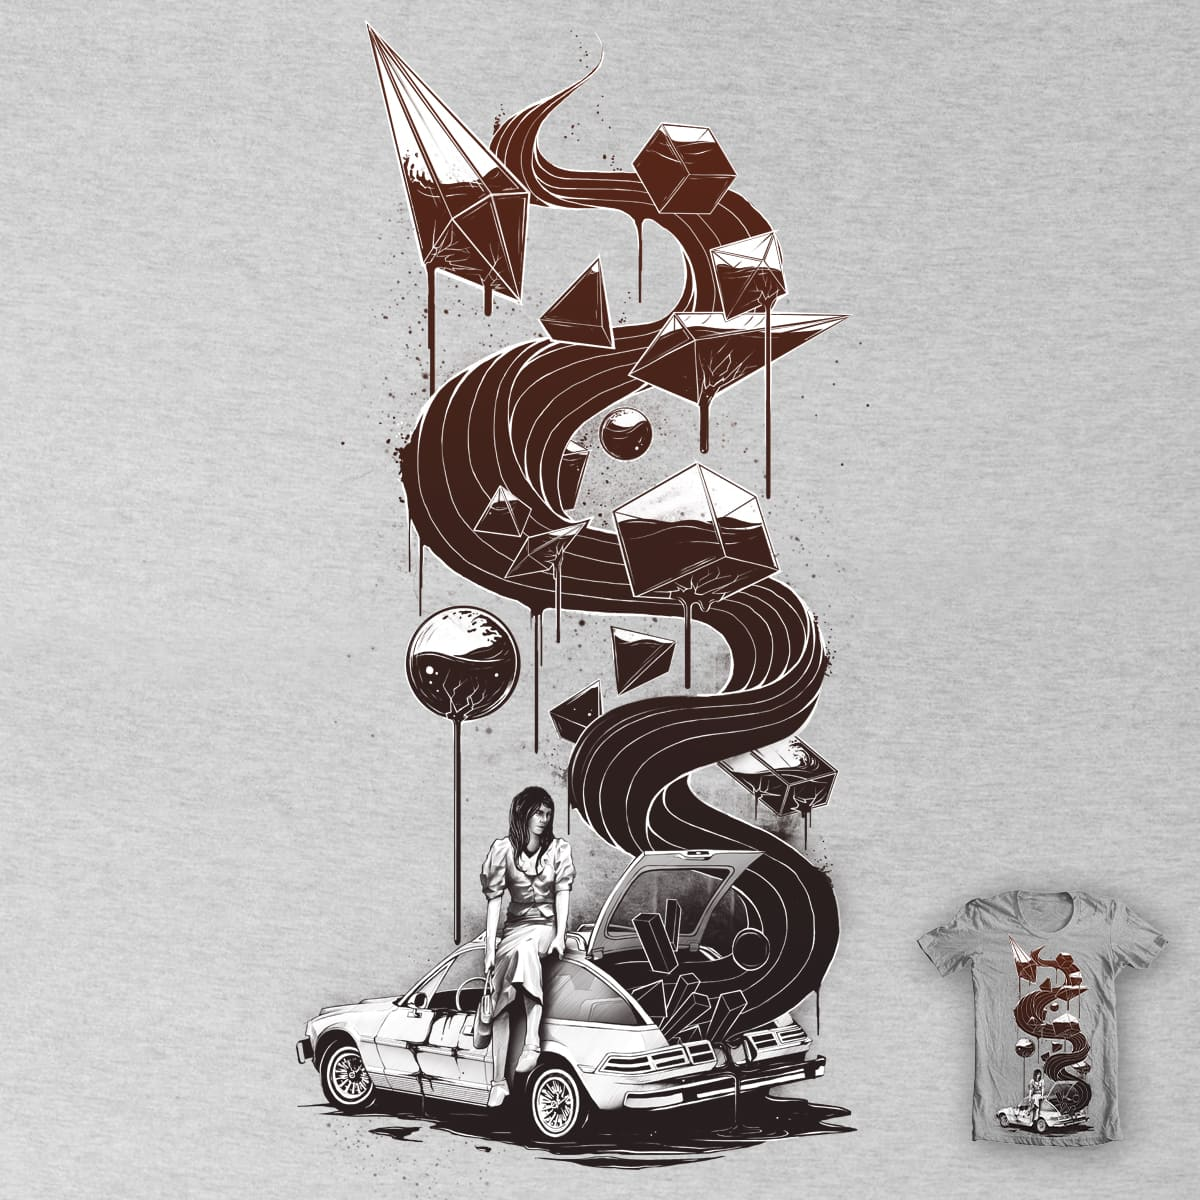 What a Trip by CUBAN0 on Threadless